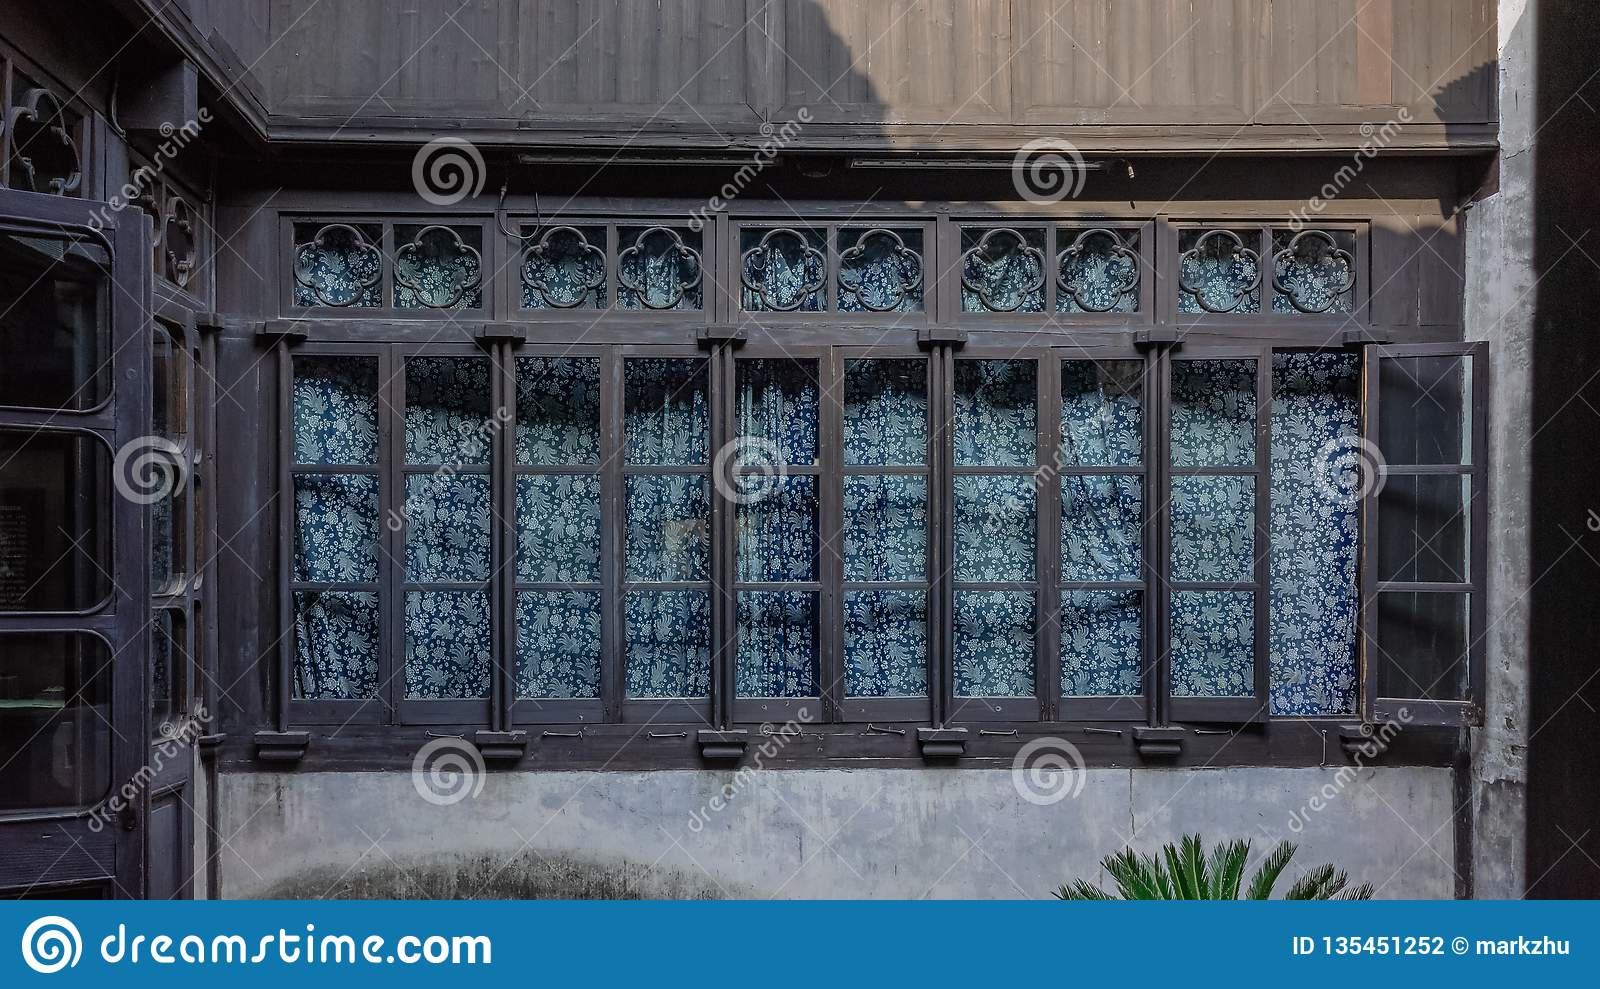 China Blue Curtains Windows Of Traditional Chinese House With Blue Curtains In Xitang